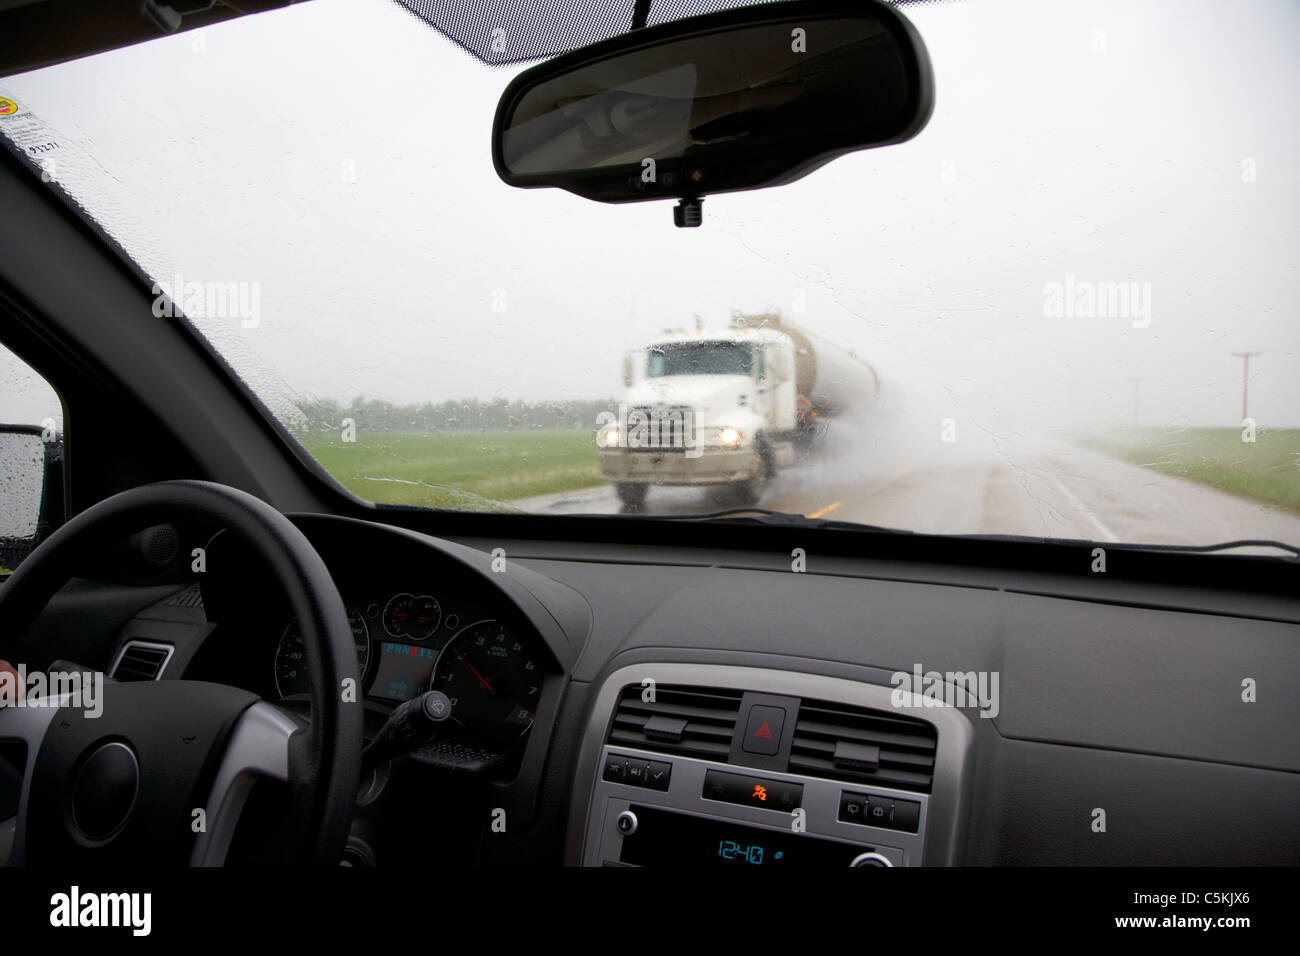 car driving through heavy rainstorm and flooding with oncoming truck in southern saskatchewan canada - Stock Image